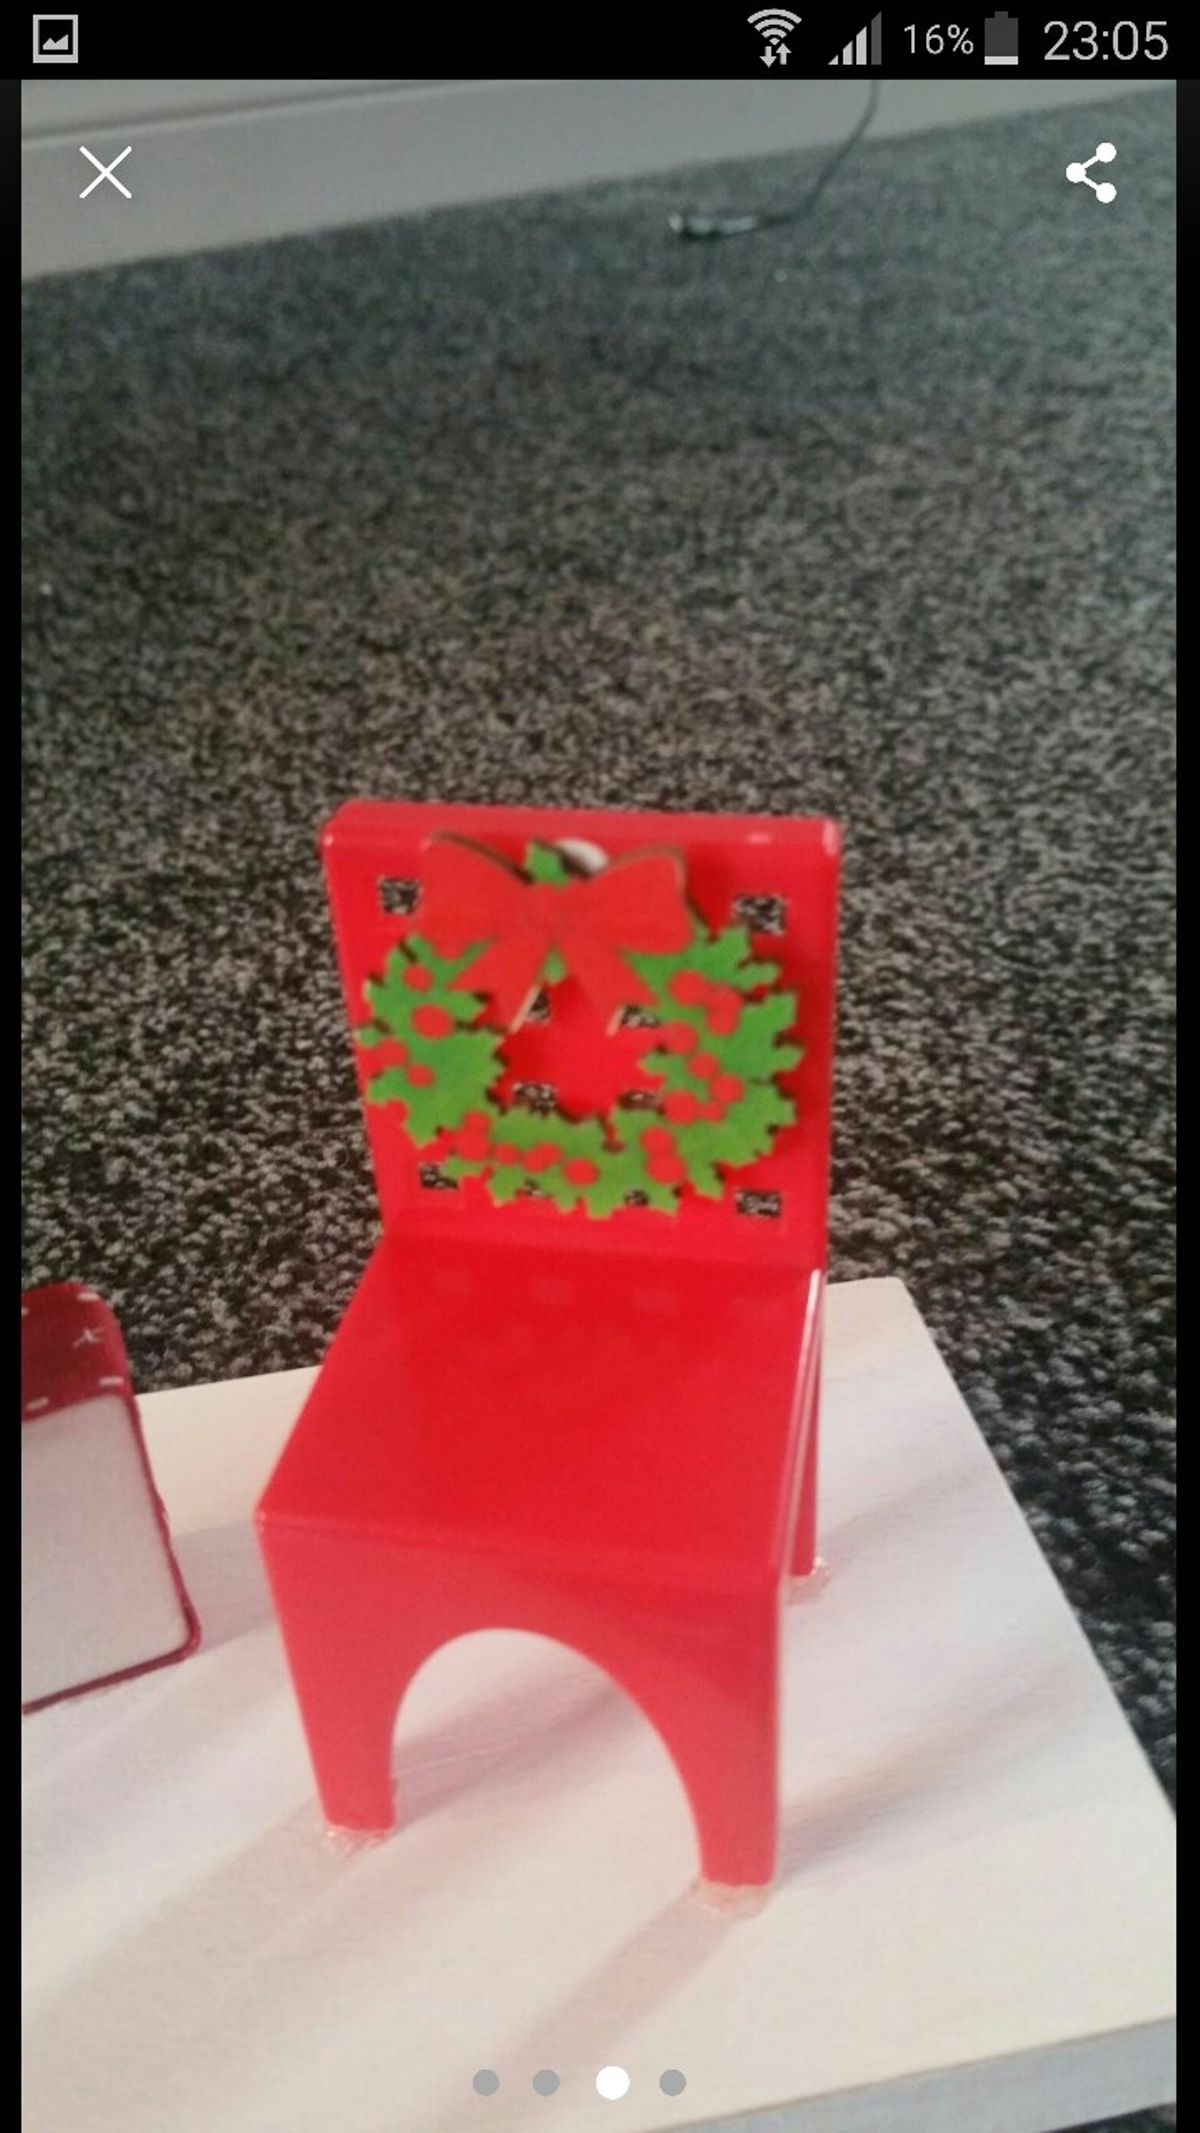 Christmas In Heaven Blocks with Chair Luxury Christmas In Heaven Block In Bd19 Kirklees for £10 00 for